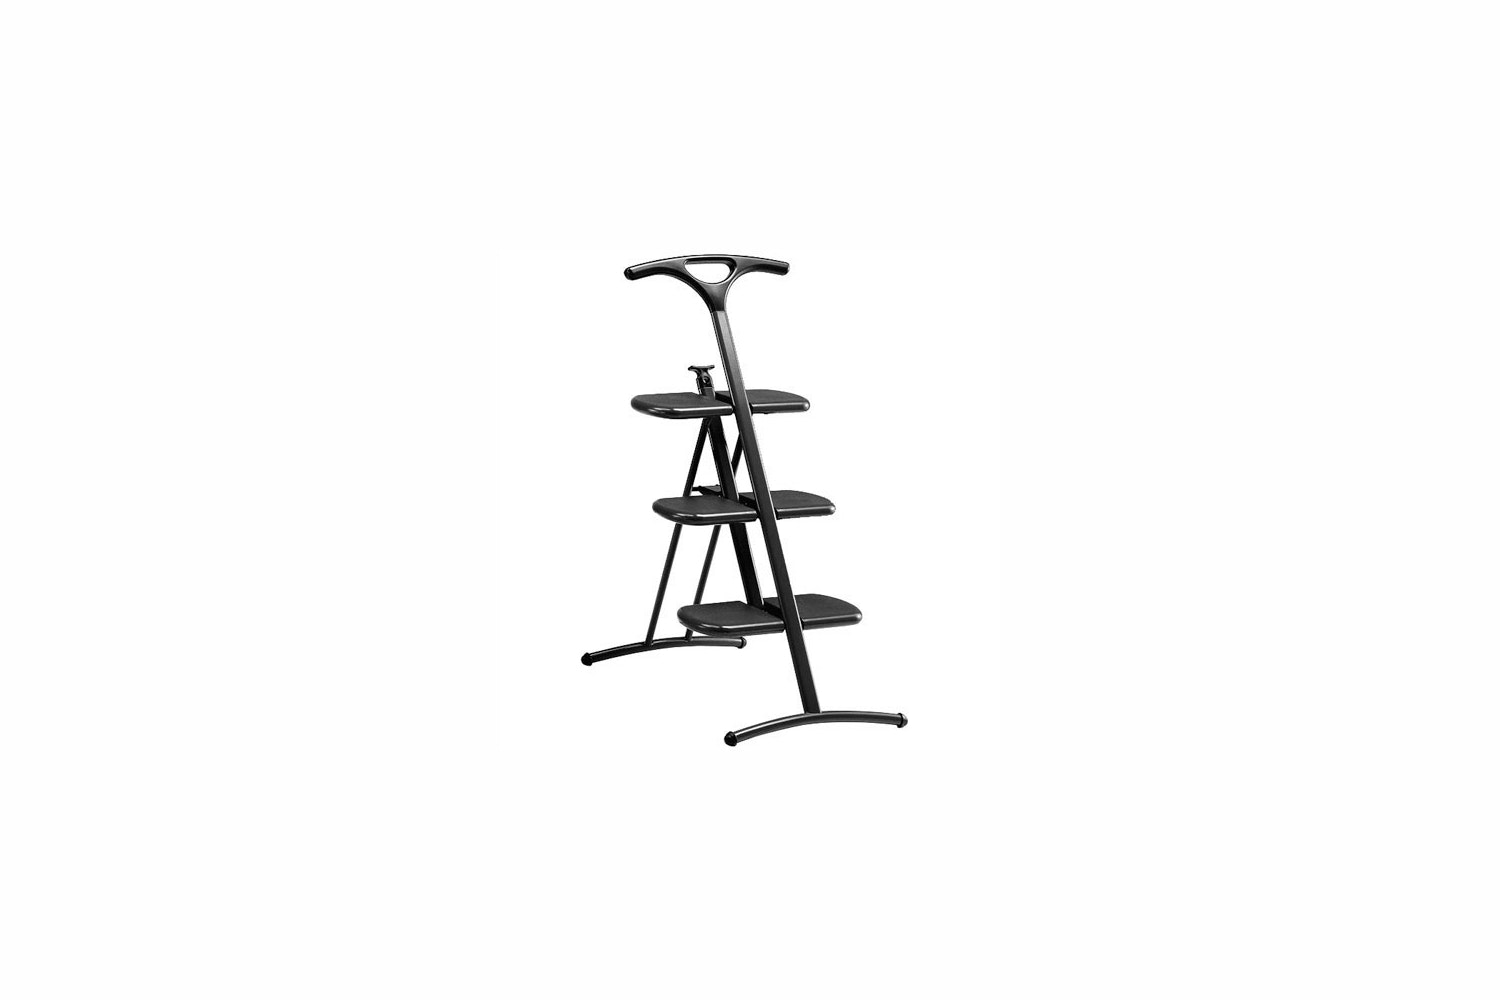 Tiramisu Stepladder by Andries Van Onck for Kartell